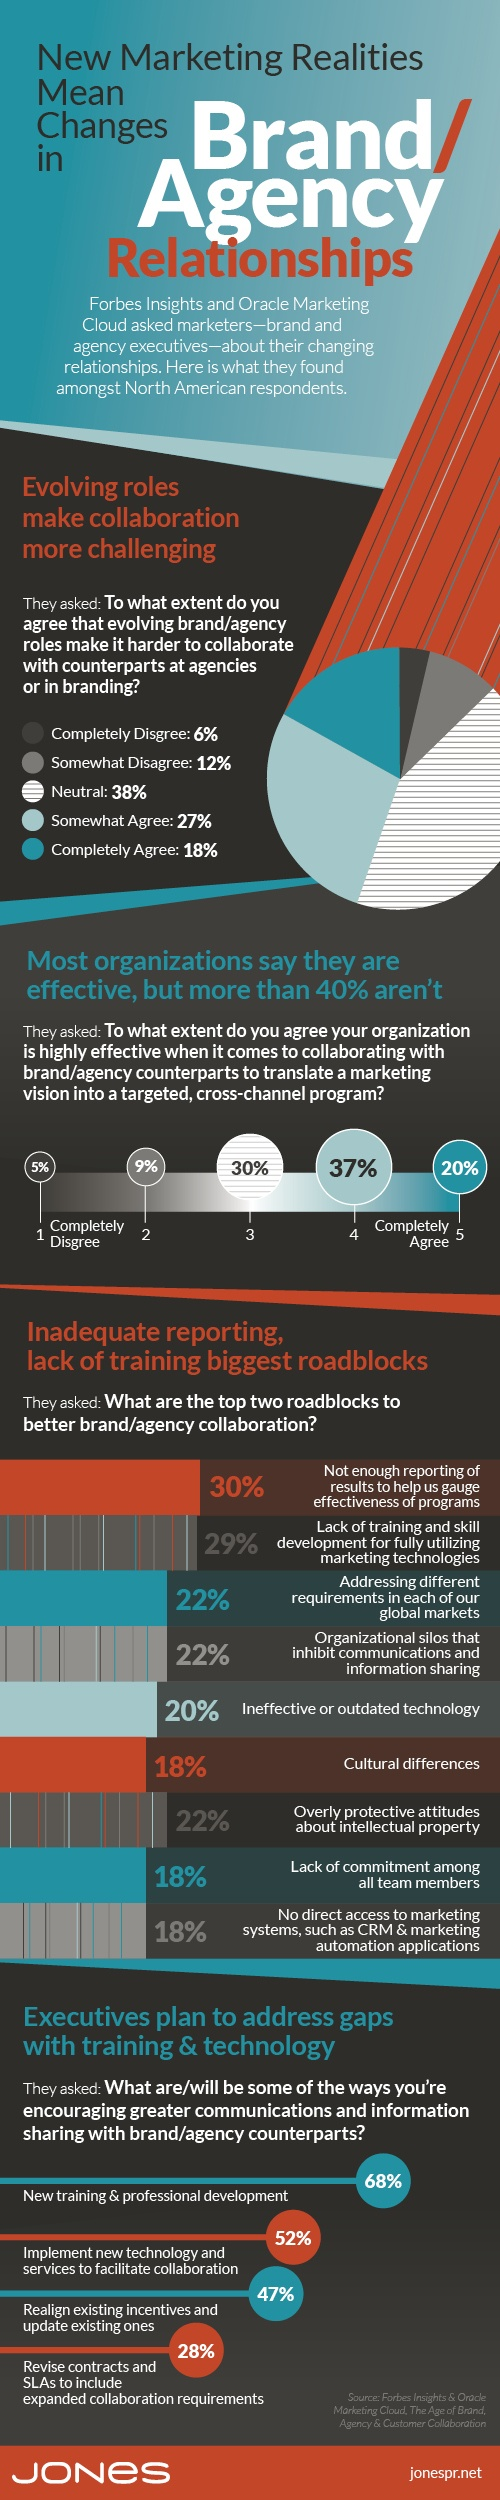 Building Better Brand/Agency Relationships (infographic)